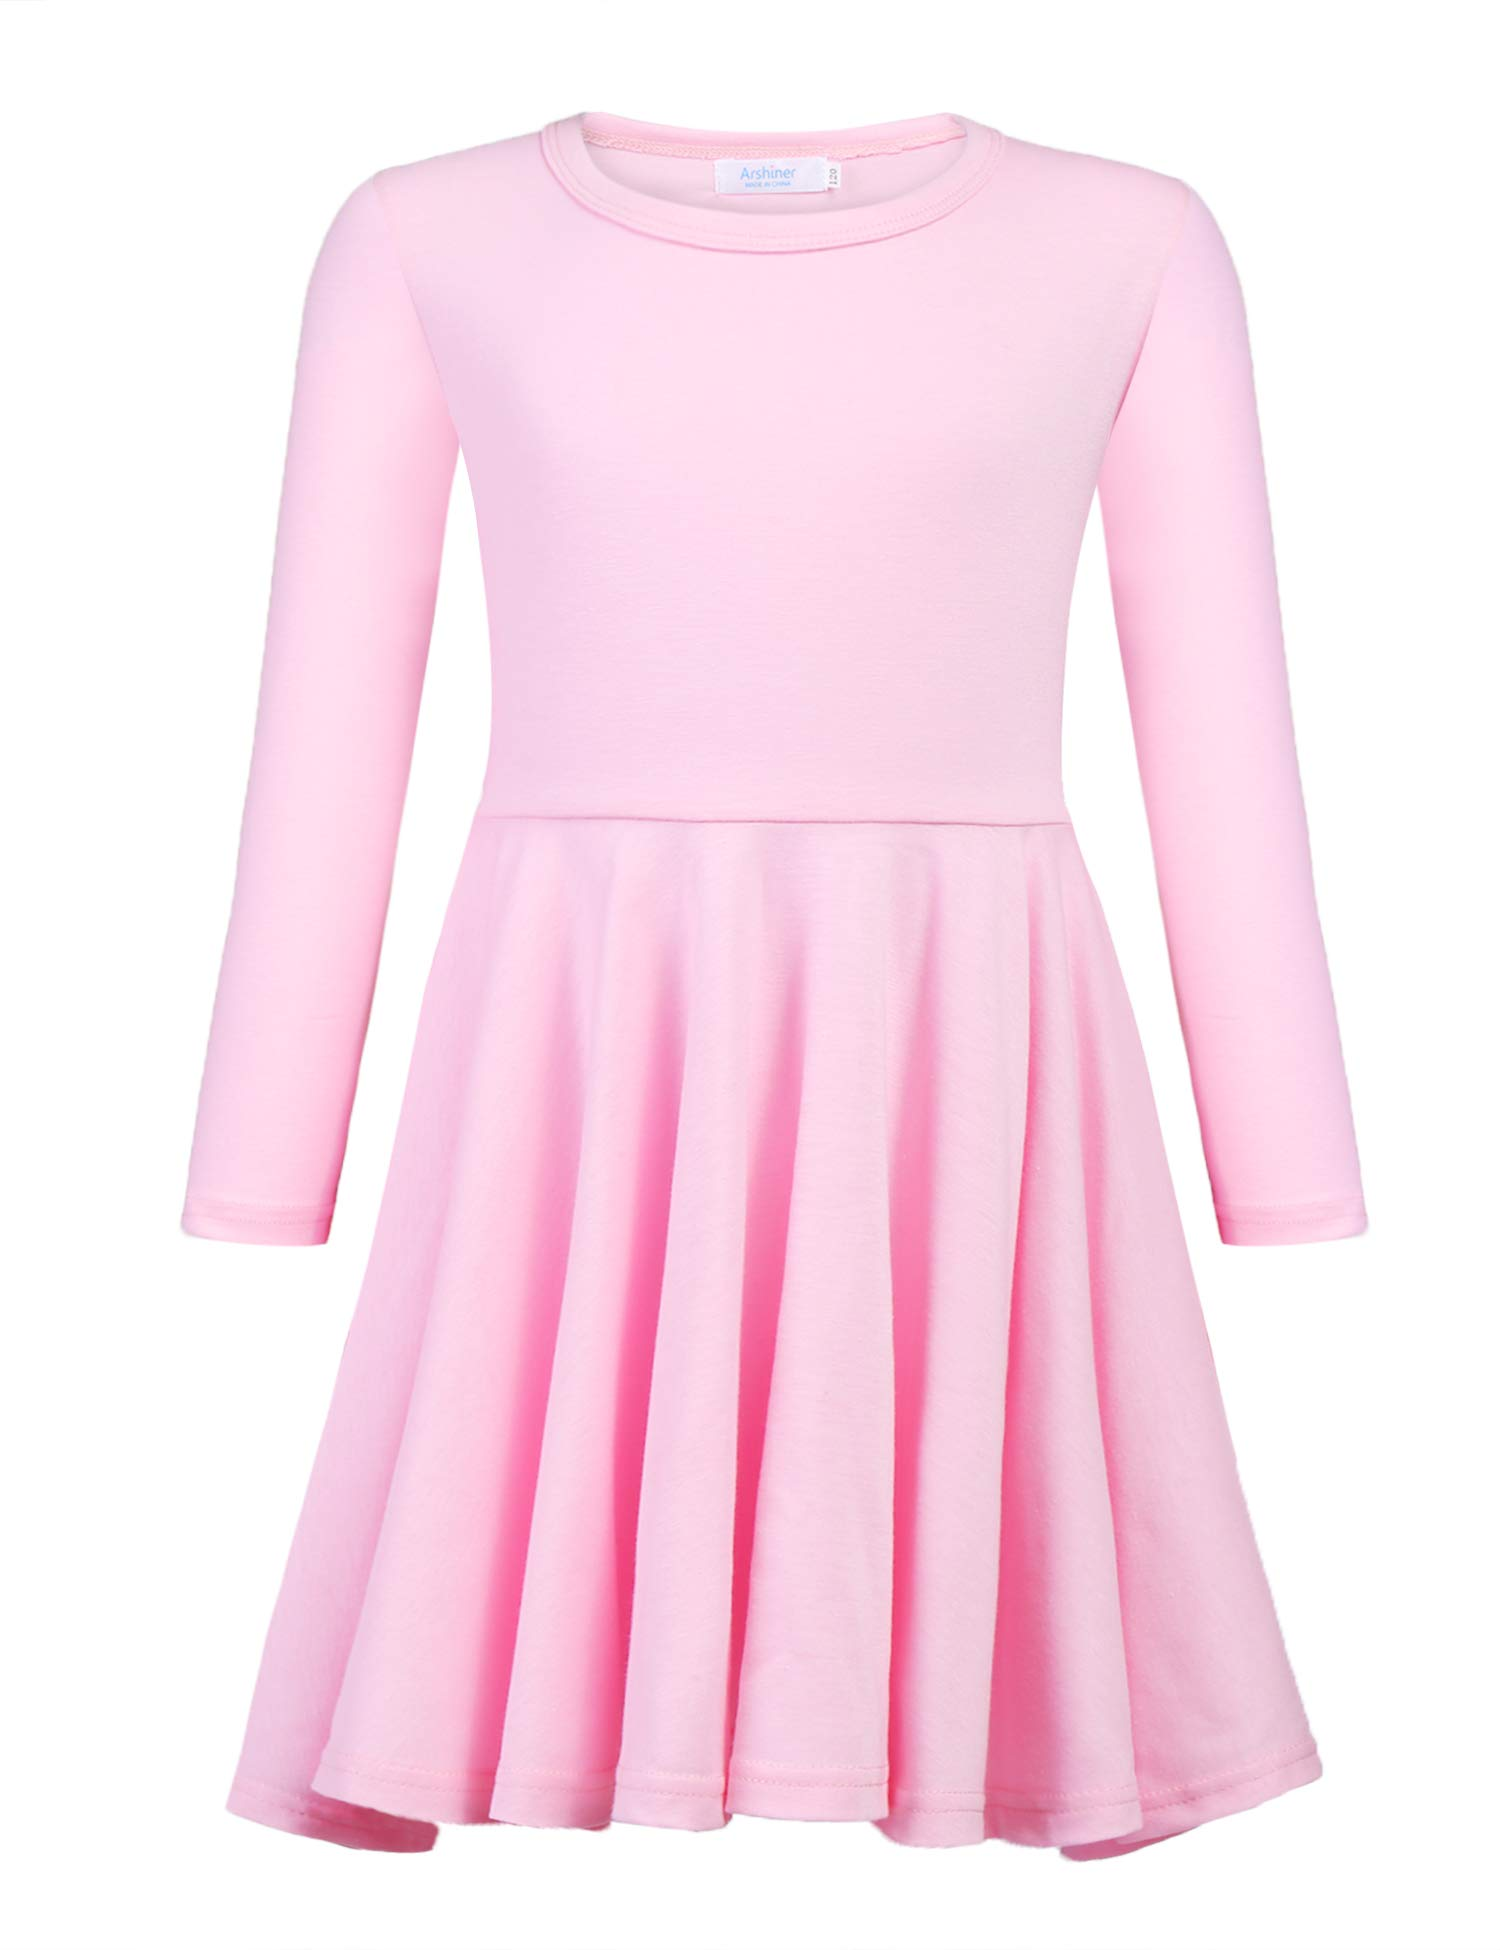 Arshiner Girls' Cotton Long Sleeve Twirly Skater Party Dress, Pink, 9 Years